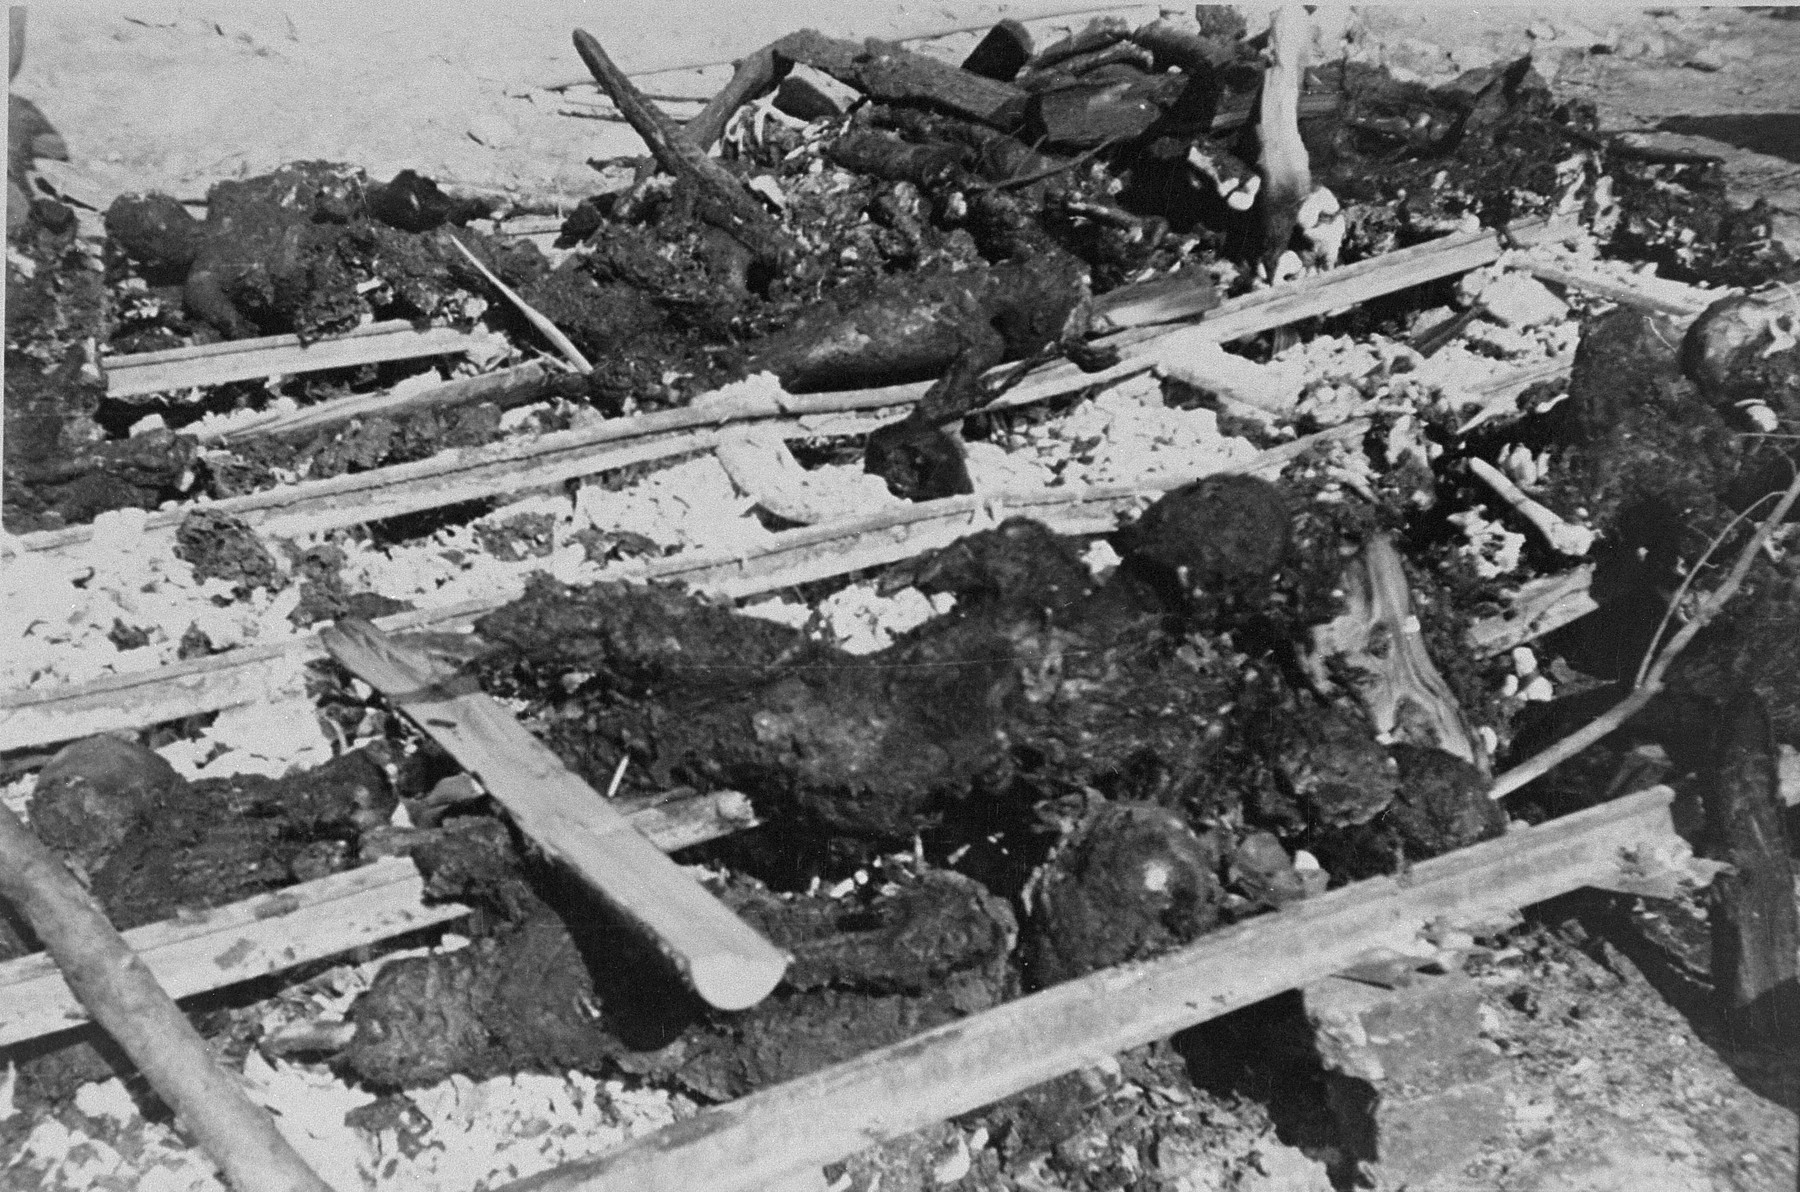 The charred remains of prisoners hastily burned by camp personnel prior to the evacuation of Ohrdruf.